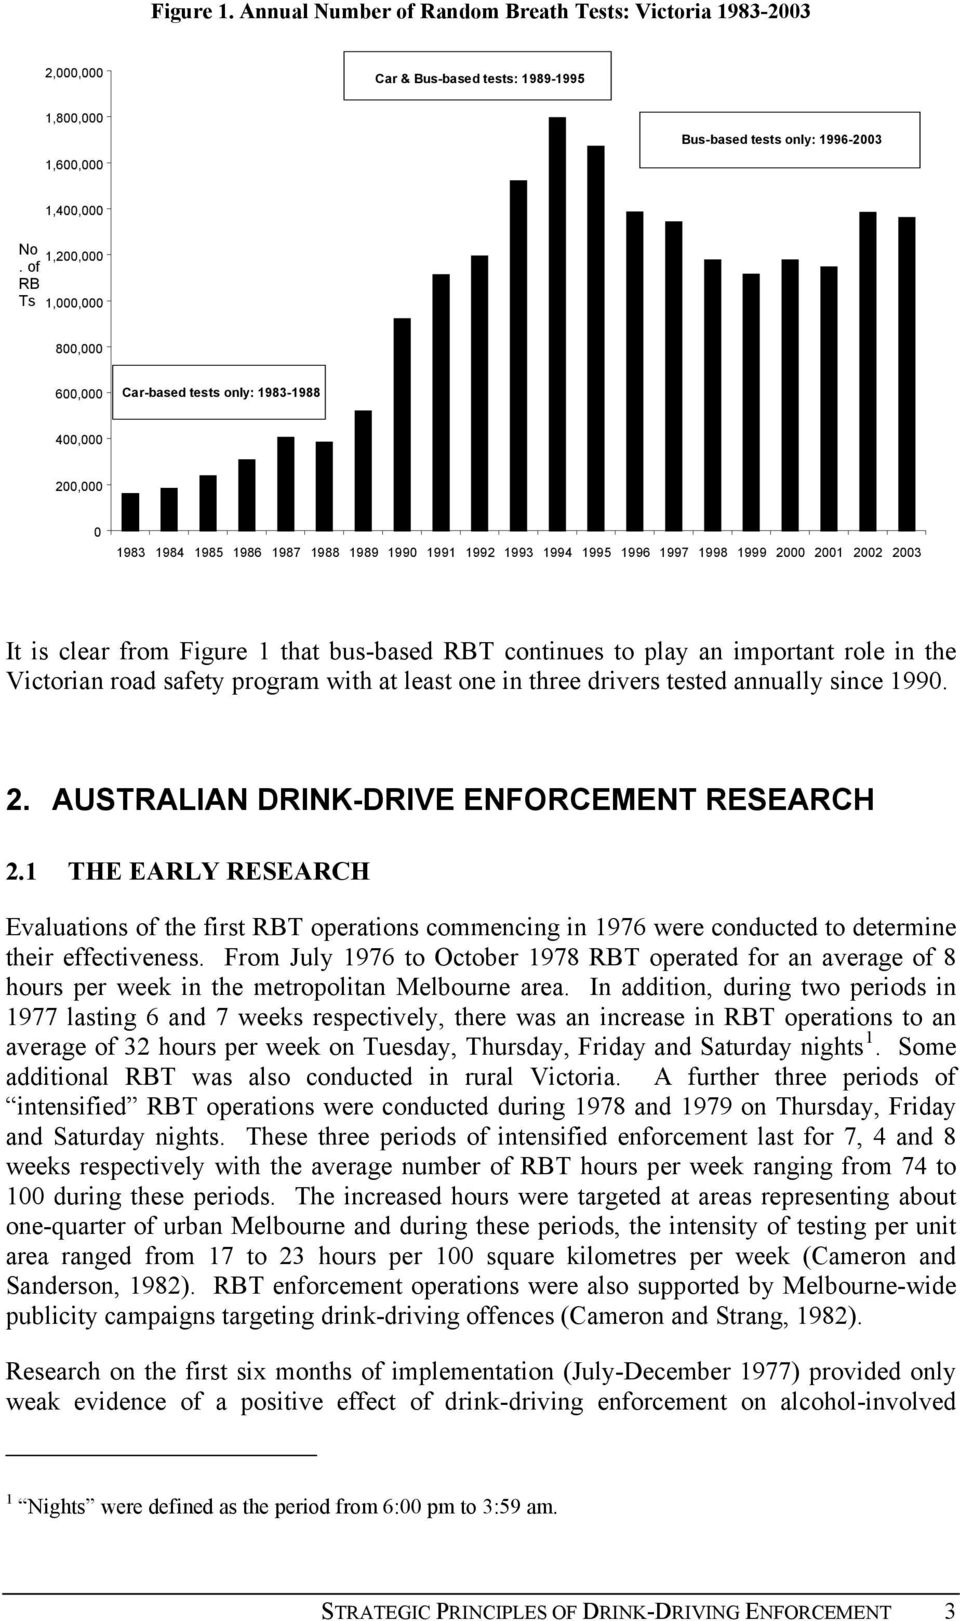 It is clear from Figure 1 that bus-based RBT continues to play an important role in the Victorian road safety program with at least one in three drivers tested annually since 1990. 2.